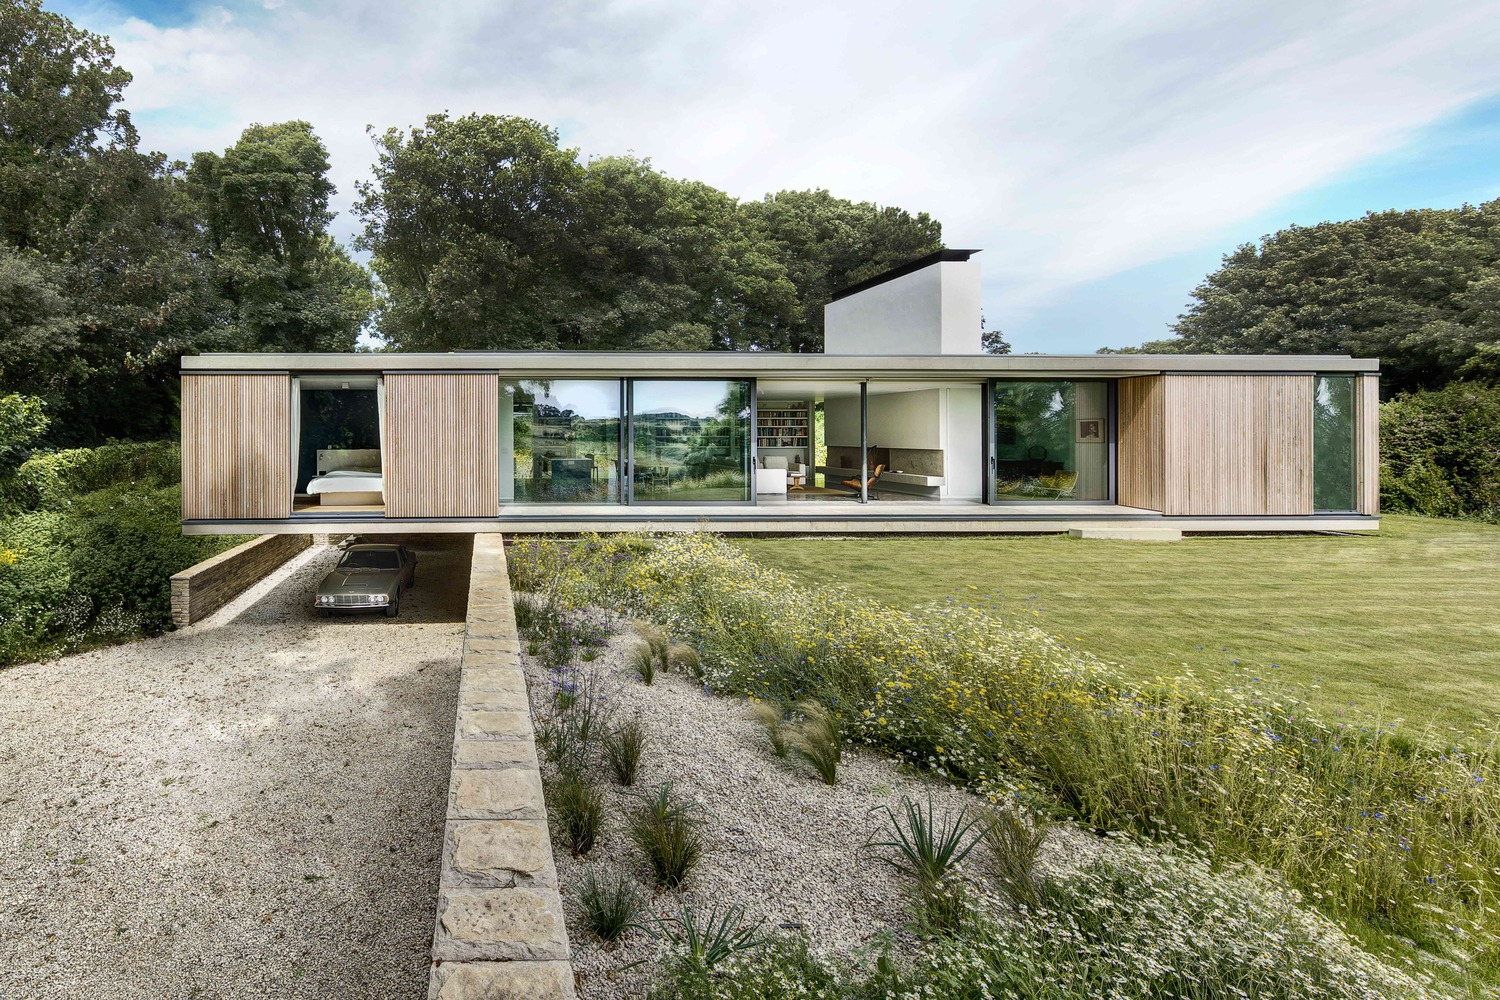 The Quest Villa in Swanage